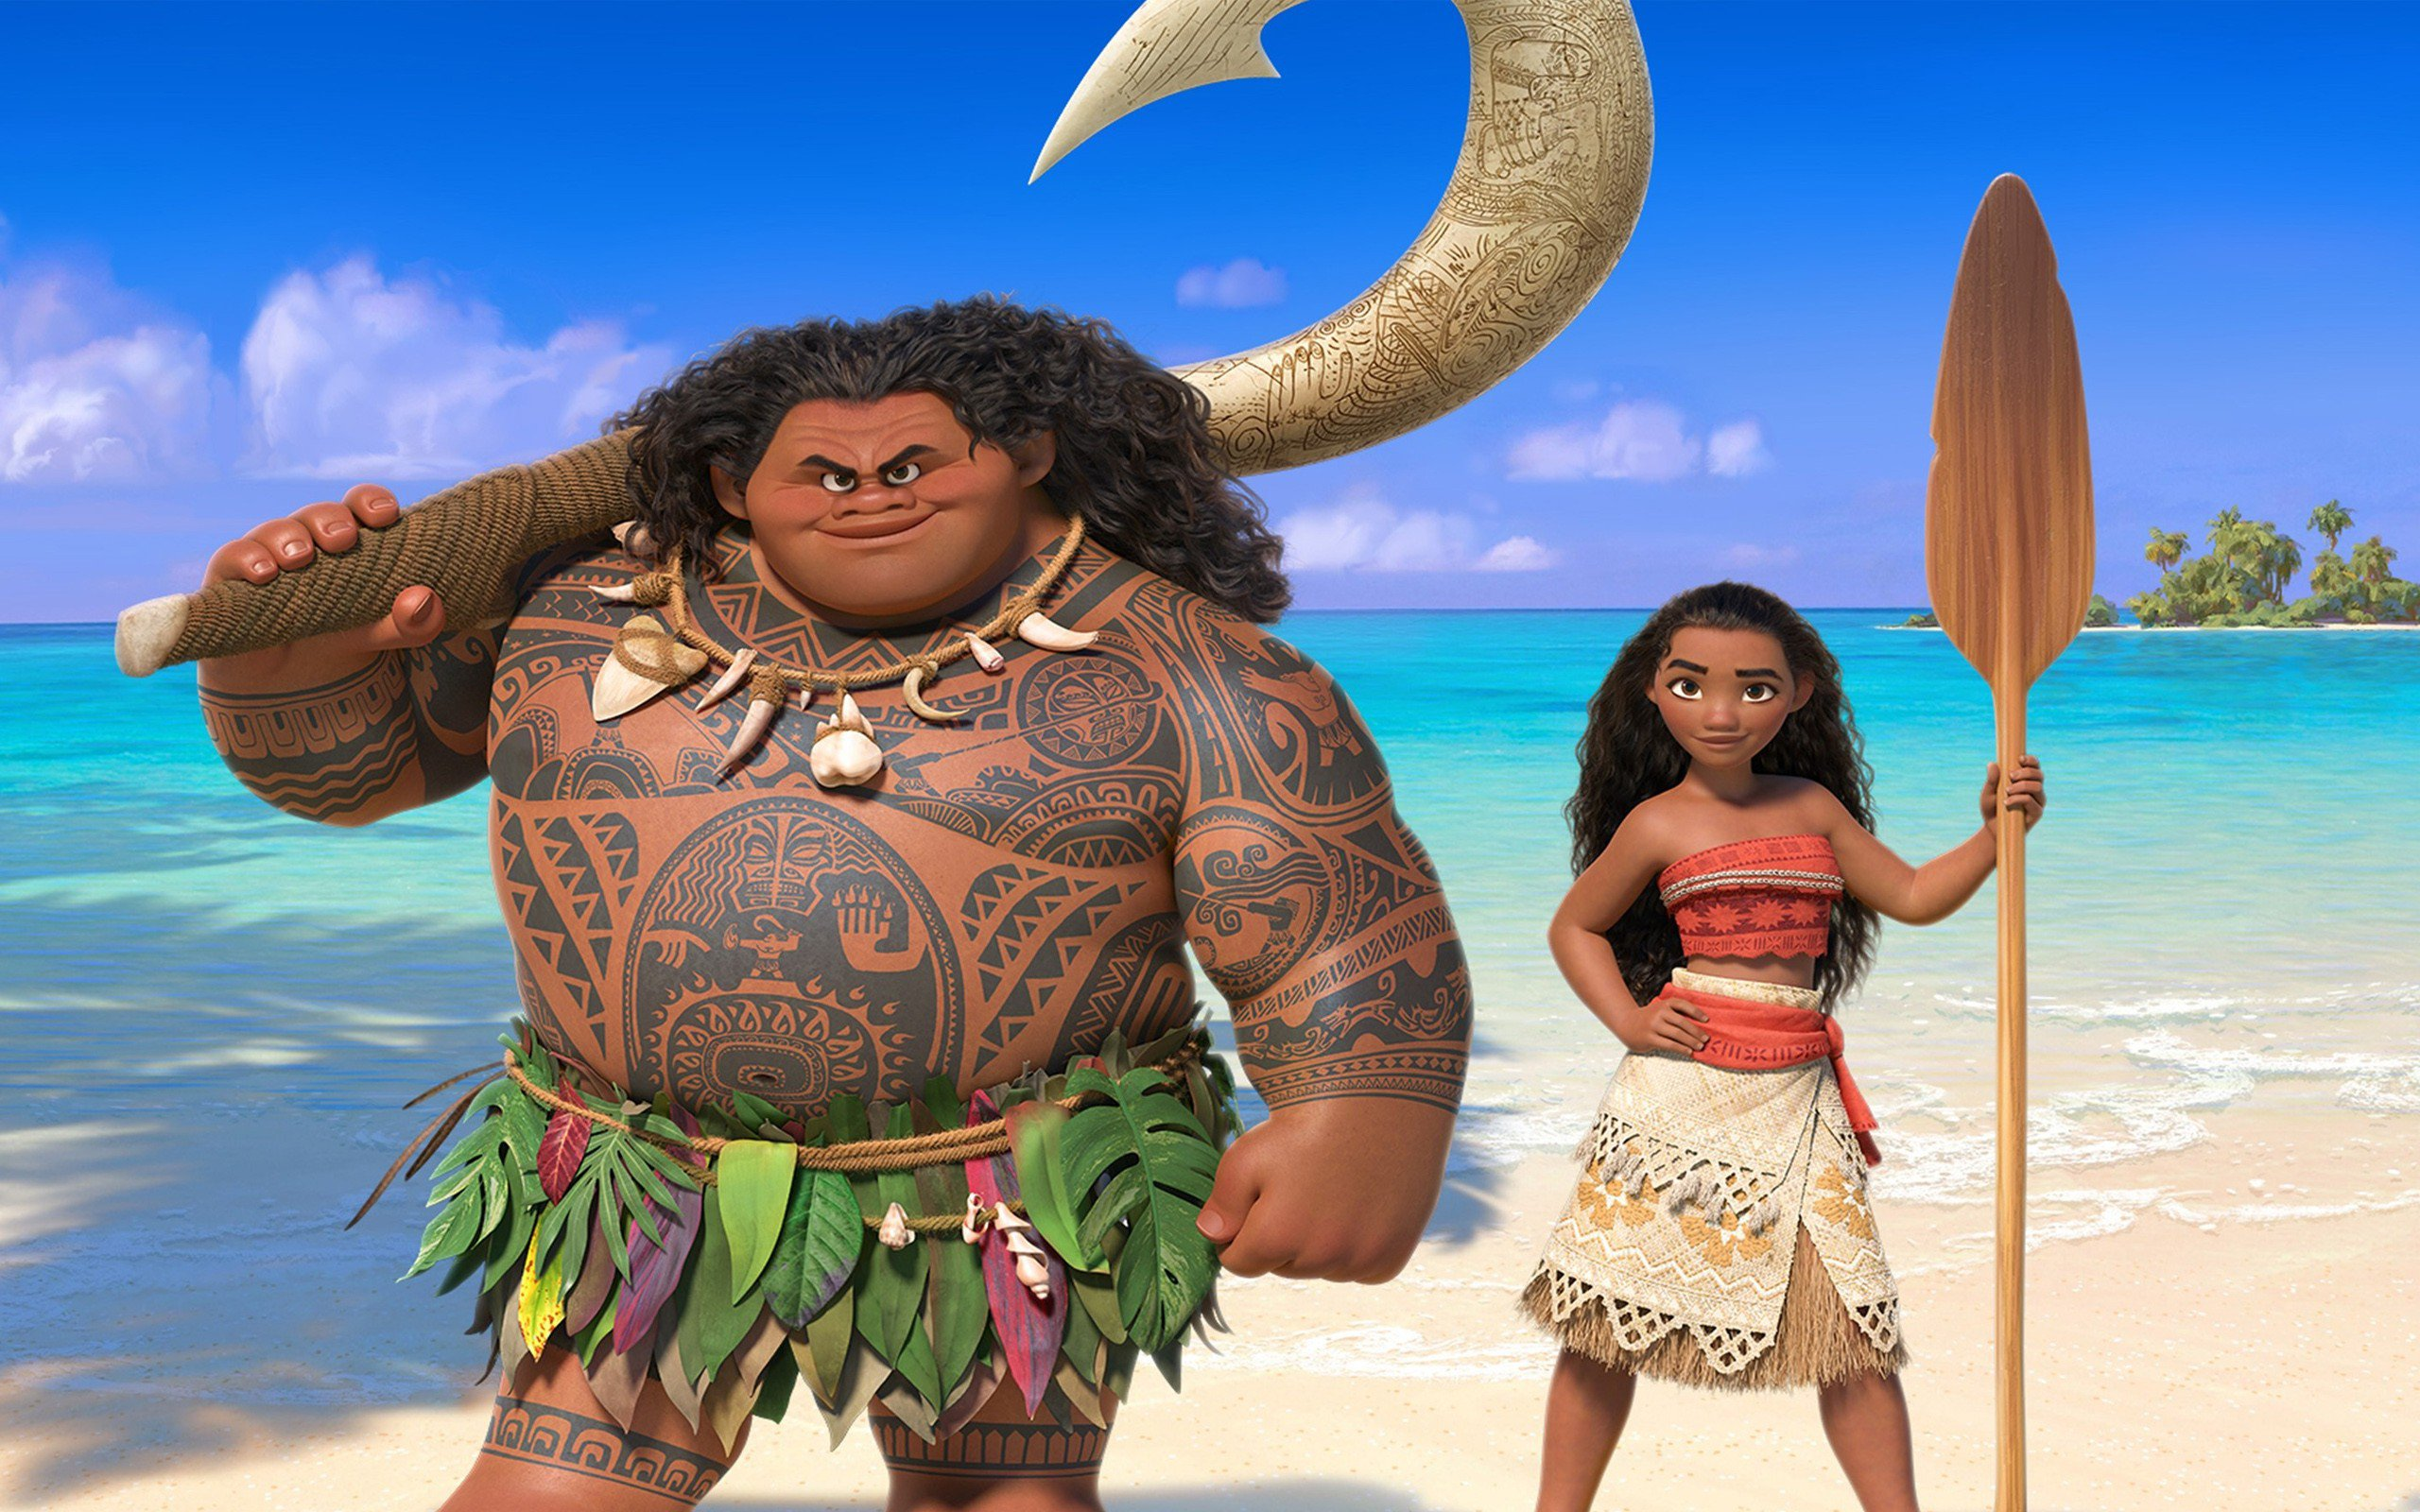 Disney's Moana will get Easter eggs featuring two lovable Disney sidekicks - Nerd Reactor